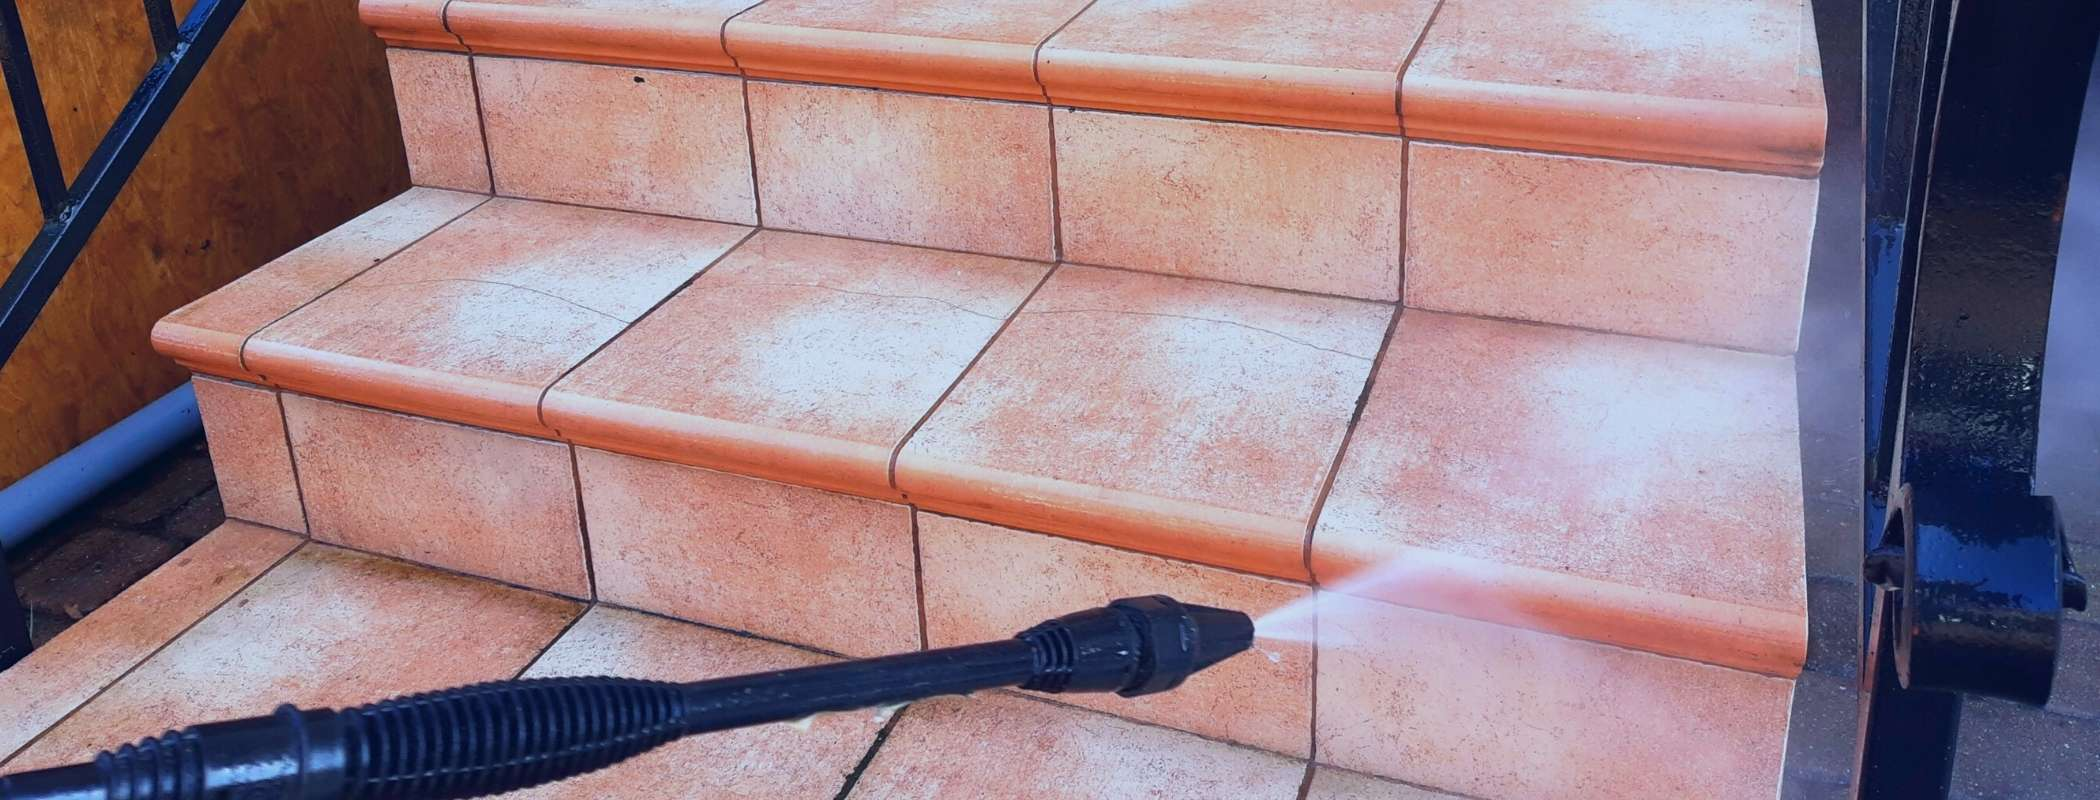 pressure washing stairs at home